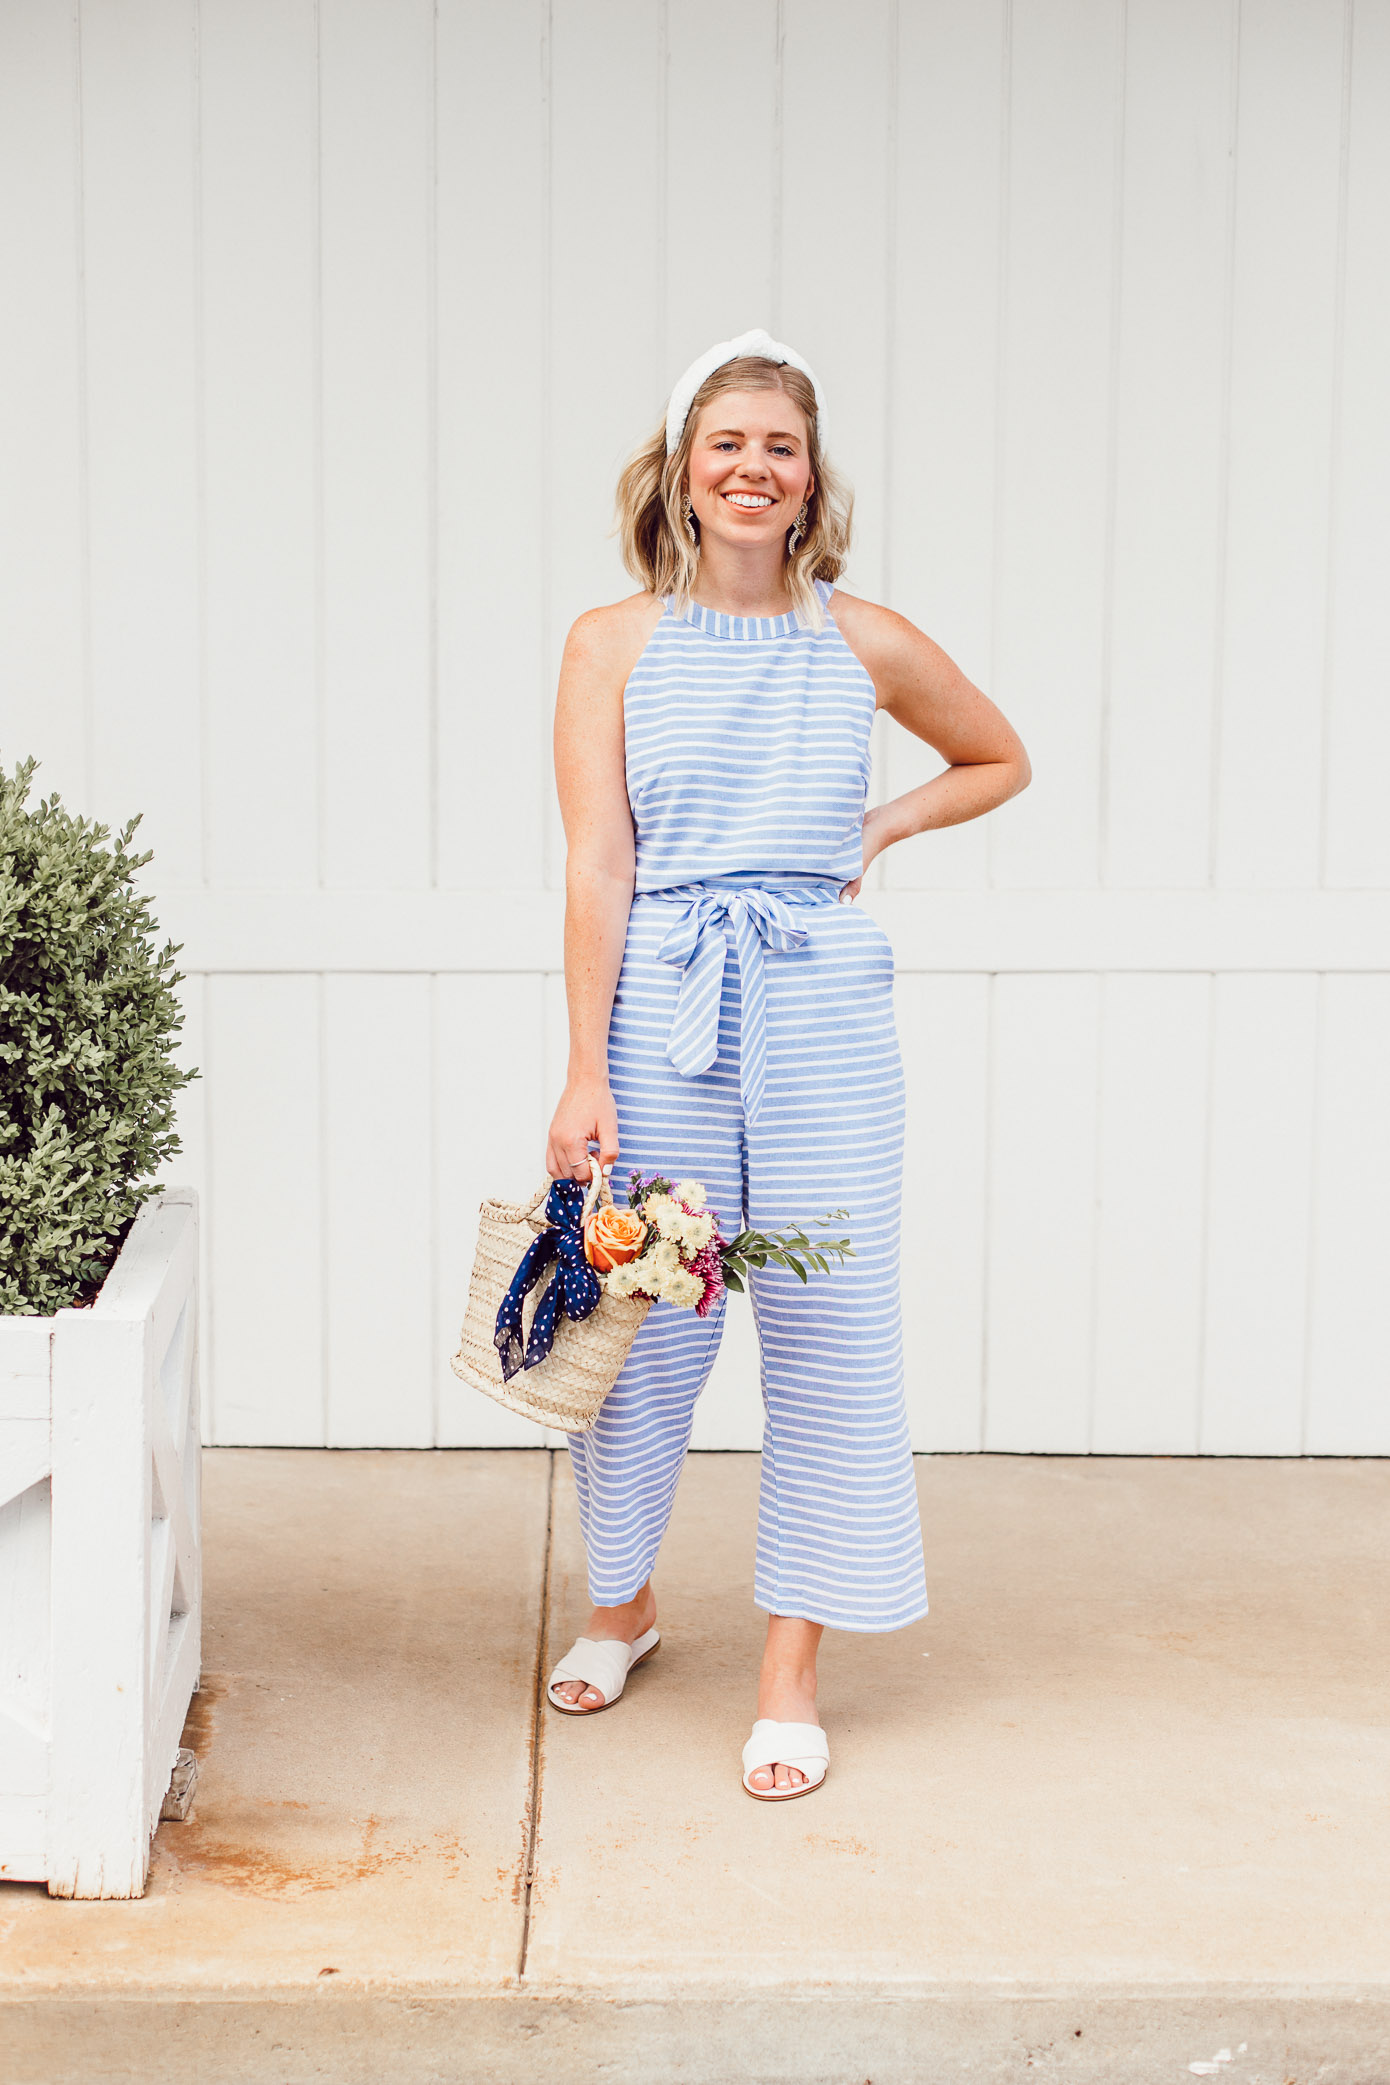 Louella Reese June 2019 Recap | Blue Striped Jumpsuit under $25, White Eyelet Headband, Mini Straw Tote, Tote of Flowers, White Slide Sandals | Louella Reese